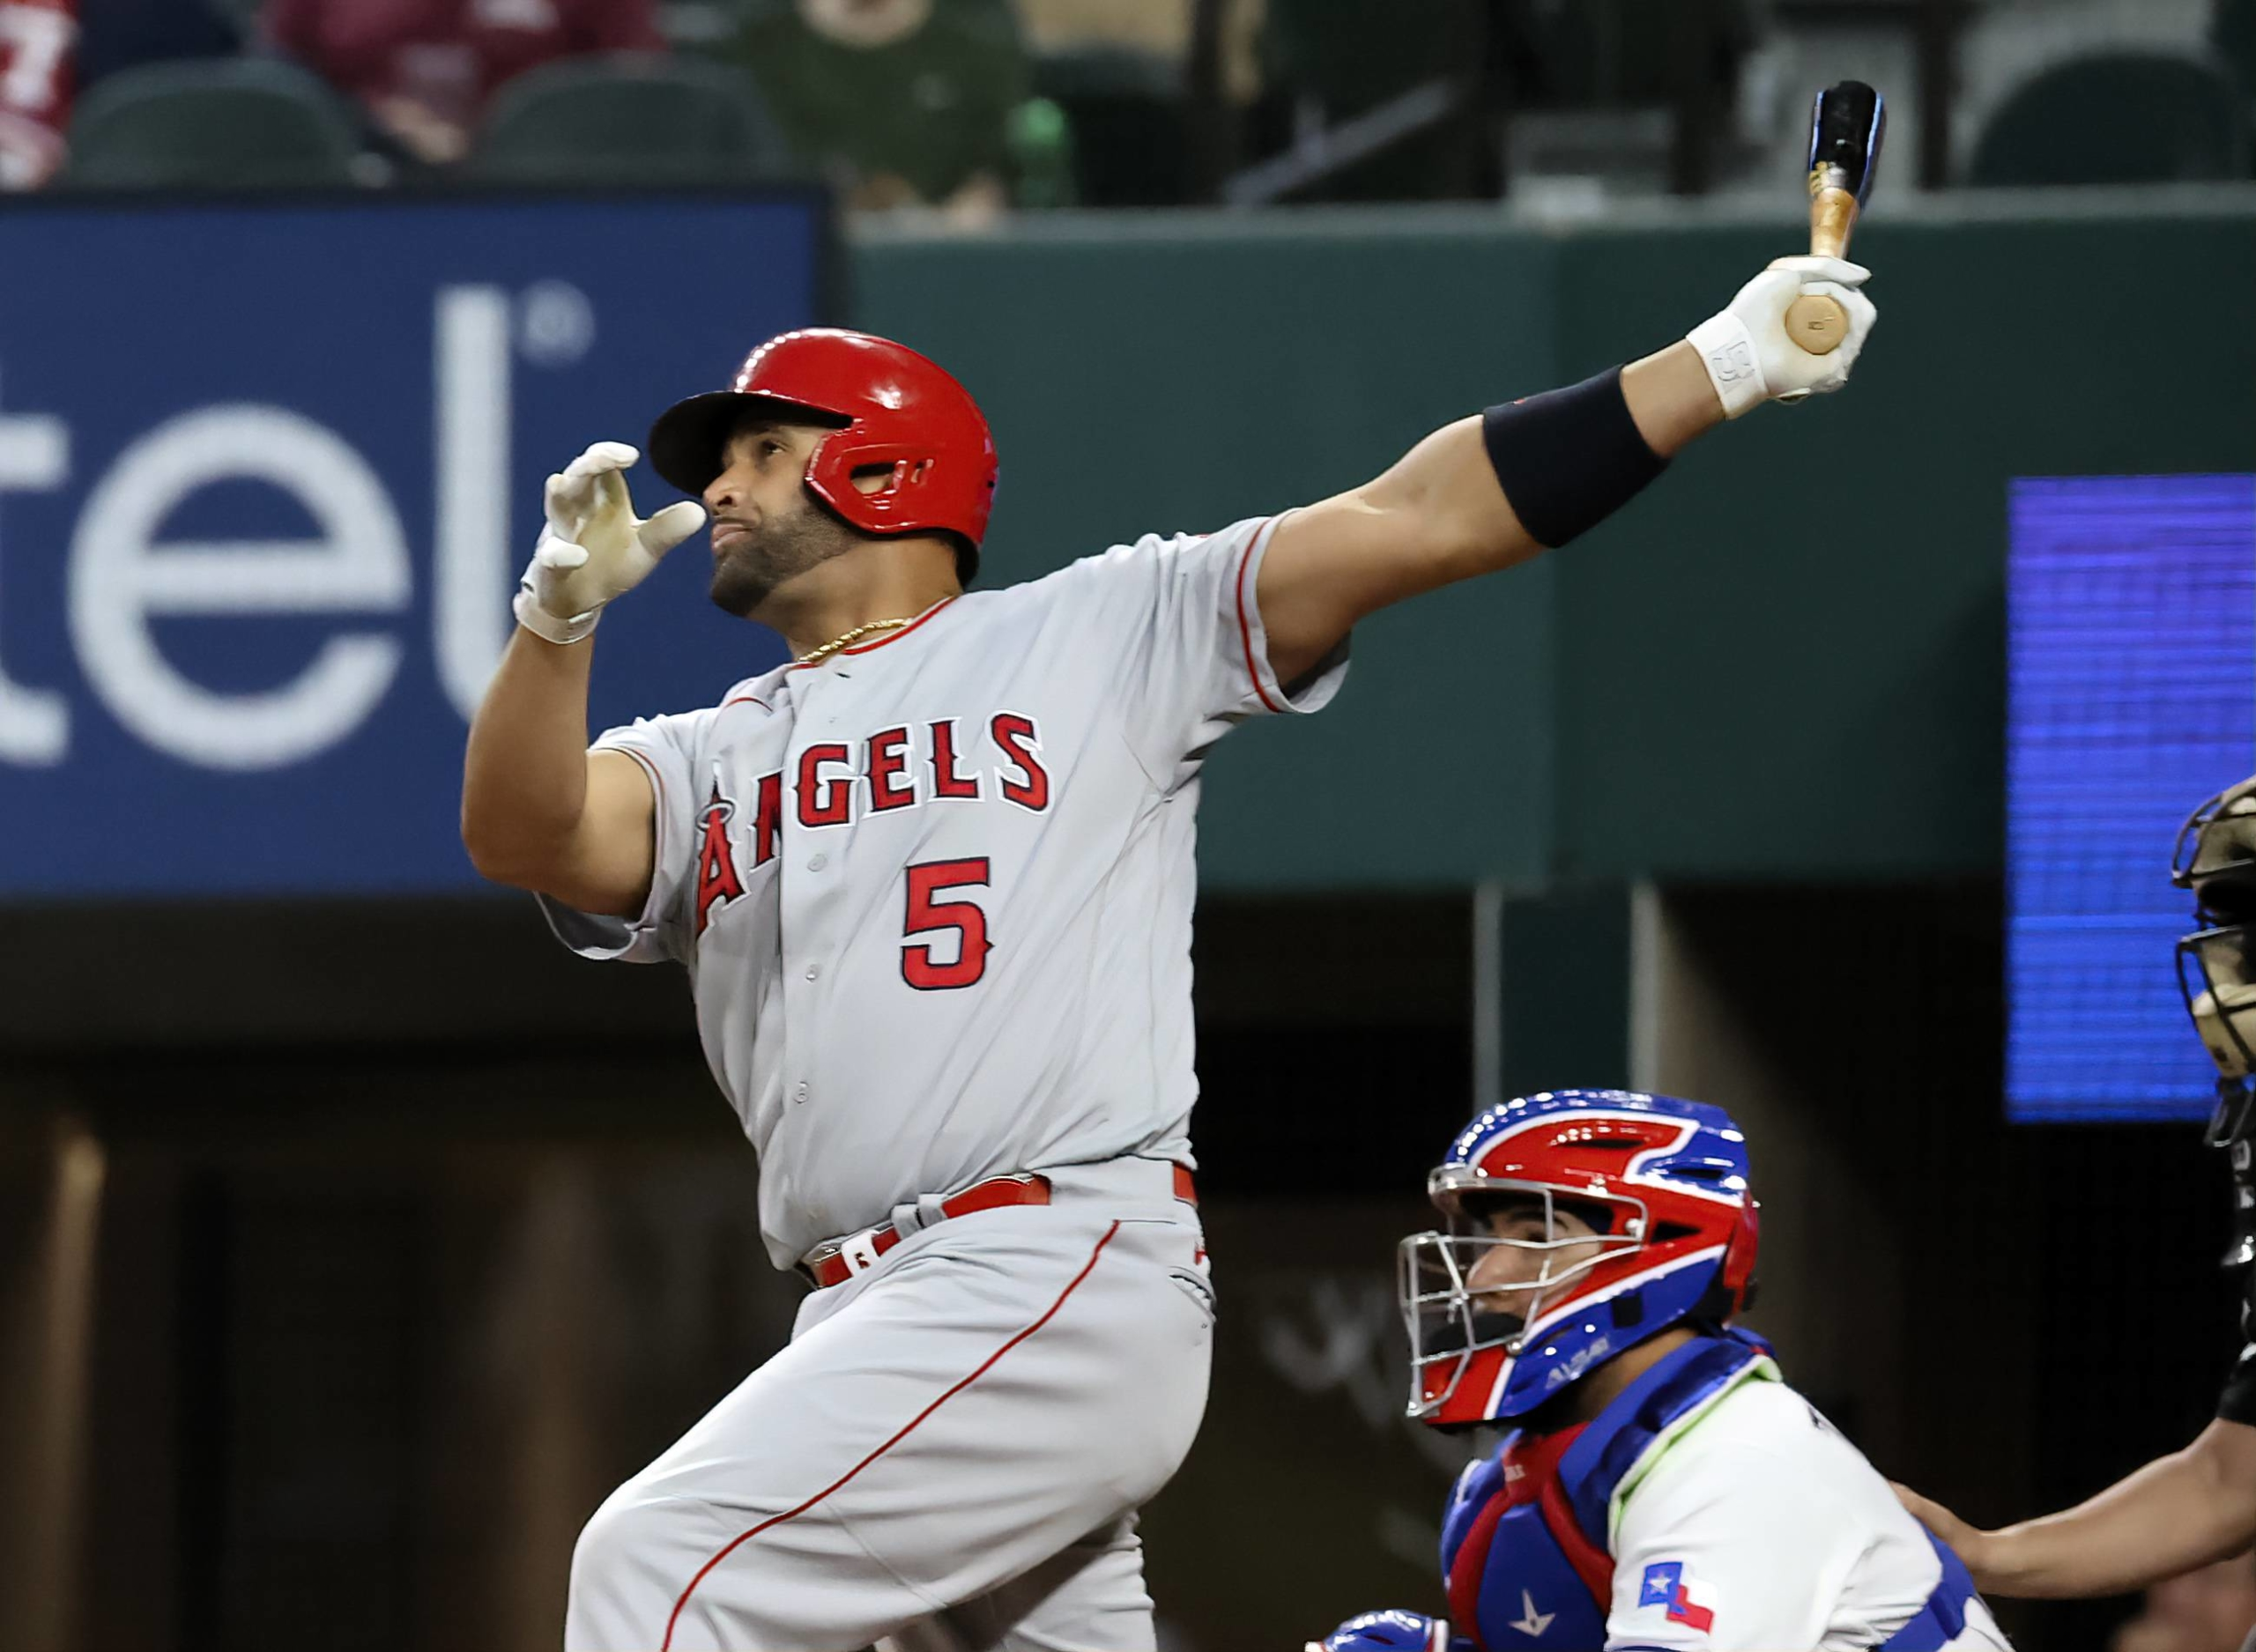 Angels first baseman Albert Pujols hits a home run against the Rangers during the fourth inning in Arlington, Texas, on April 26. | USA TODAY / VIA REUTERS